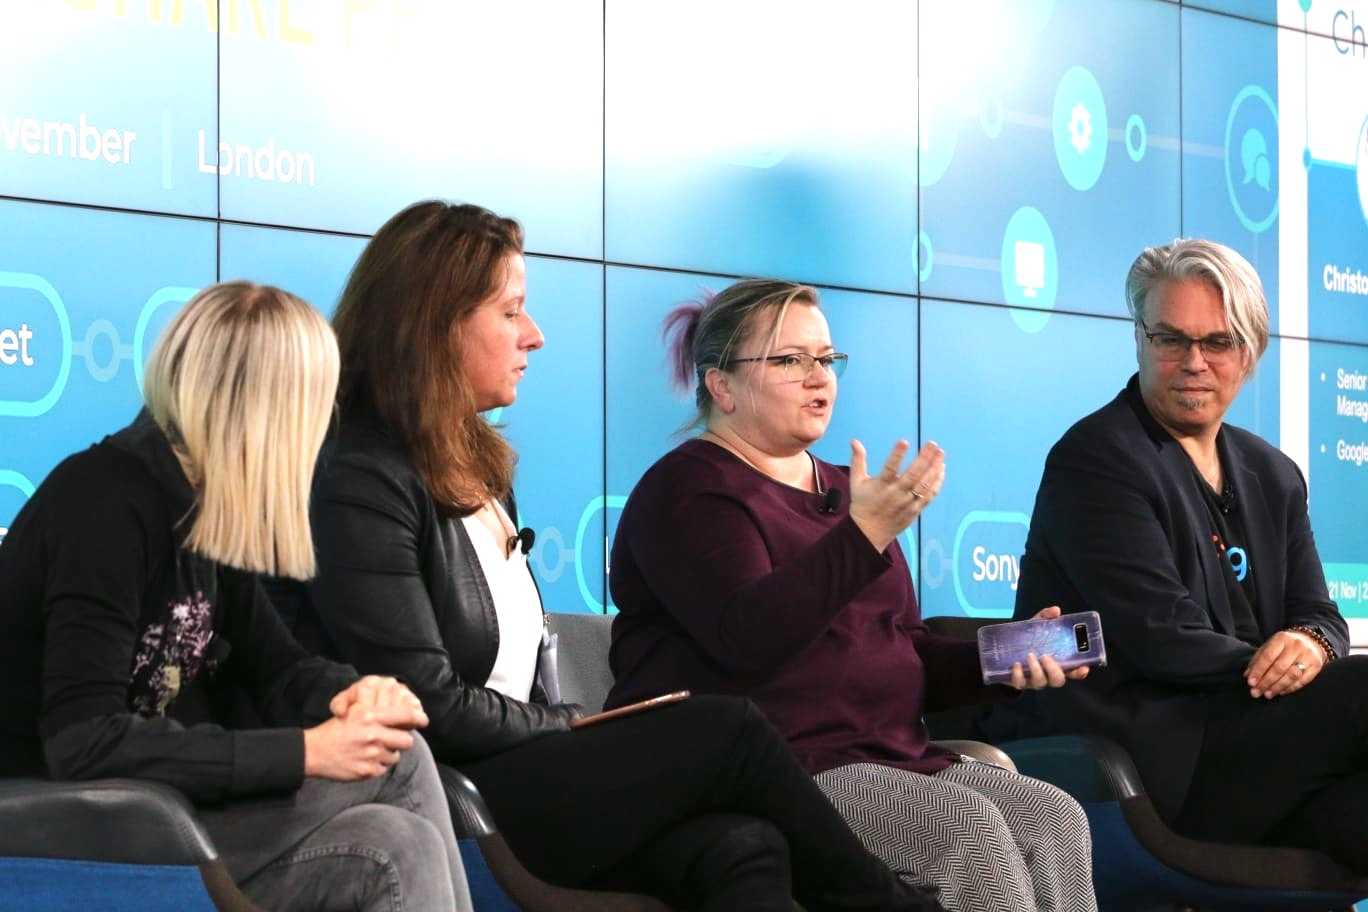 The 'Building an Accessibility Champions network' panelists at TechShare Pro